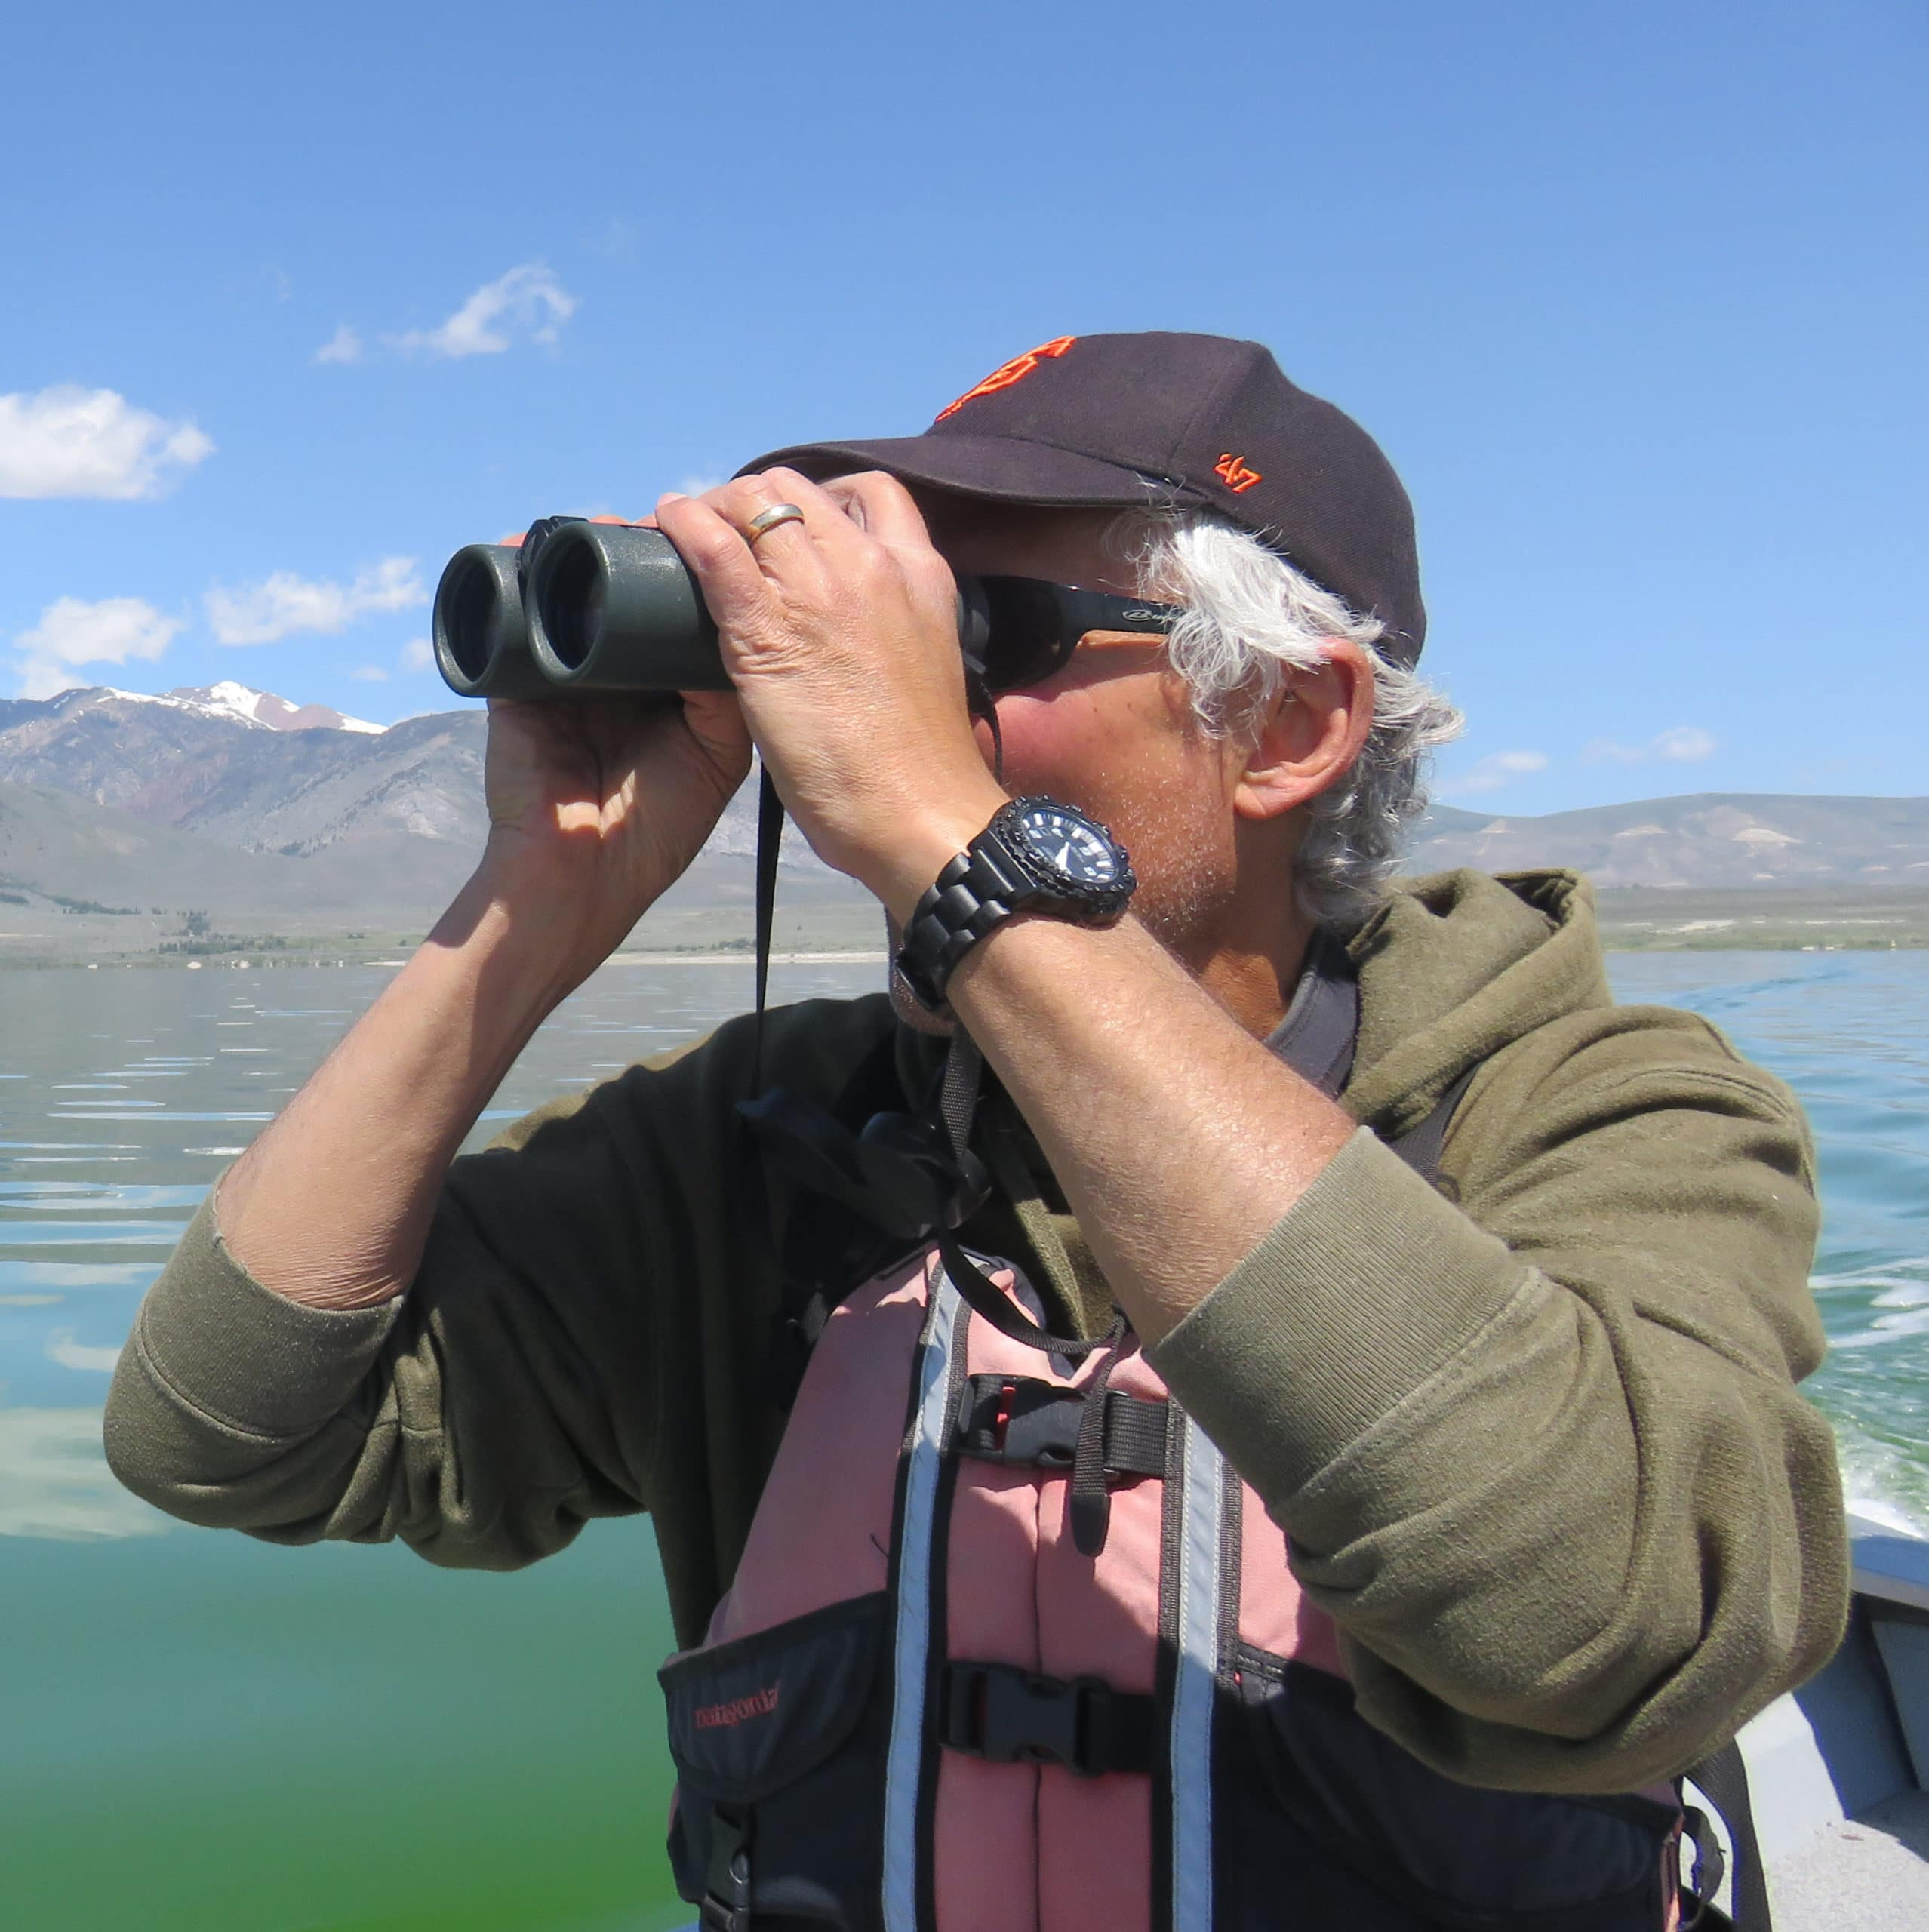 Researcher holds a pair of binoculars up to his eyes while wearing a life jacket and sitting on a boat with Mono Lake and mountains in the background.